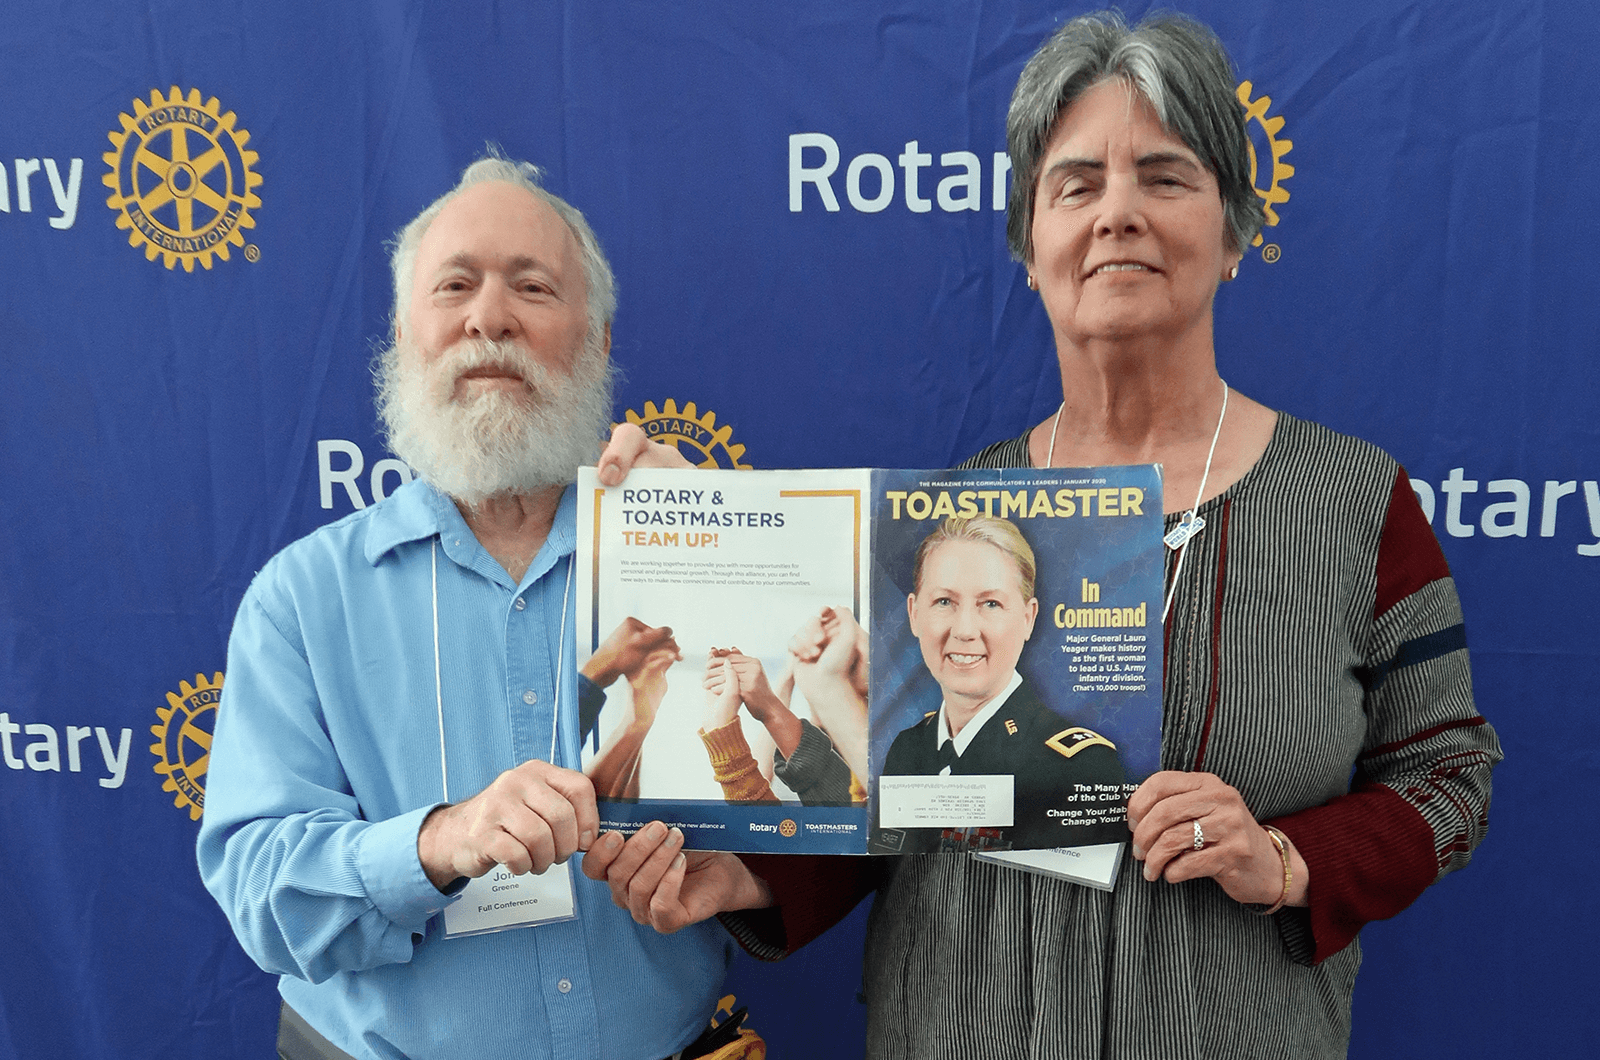 Jon S. Greene, DTM, and Martha Greene, both of Sparks, Nevada, attend the 2020 Rotary International Peace Conference in Ontario, California.